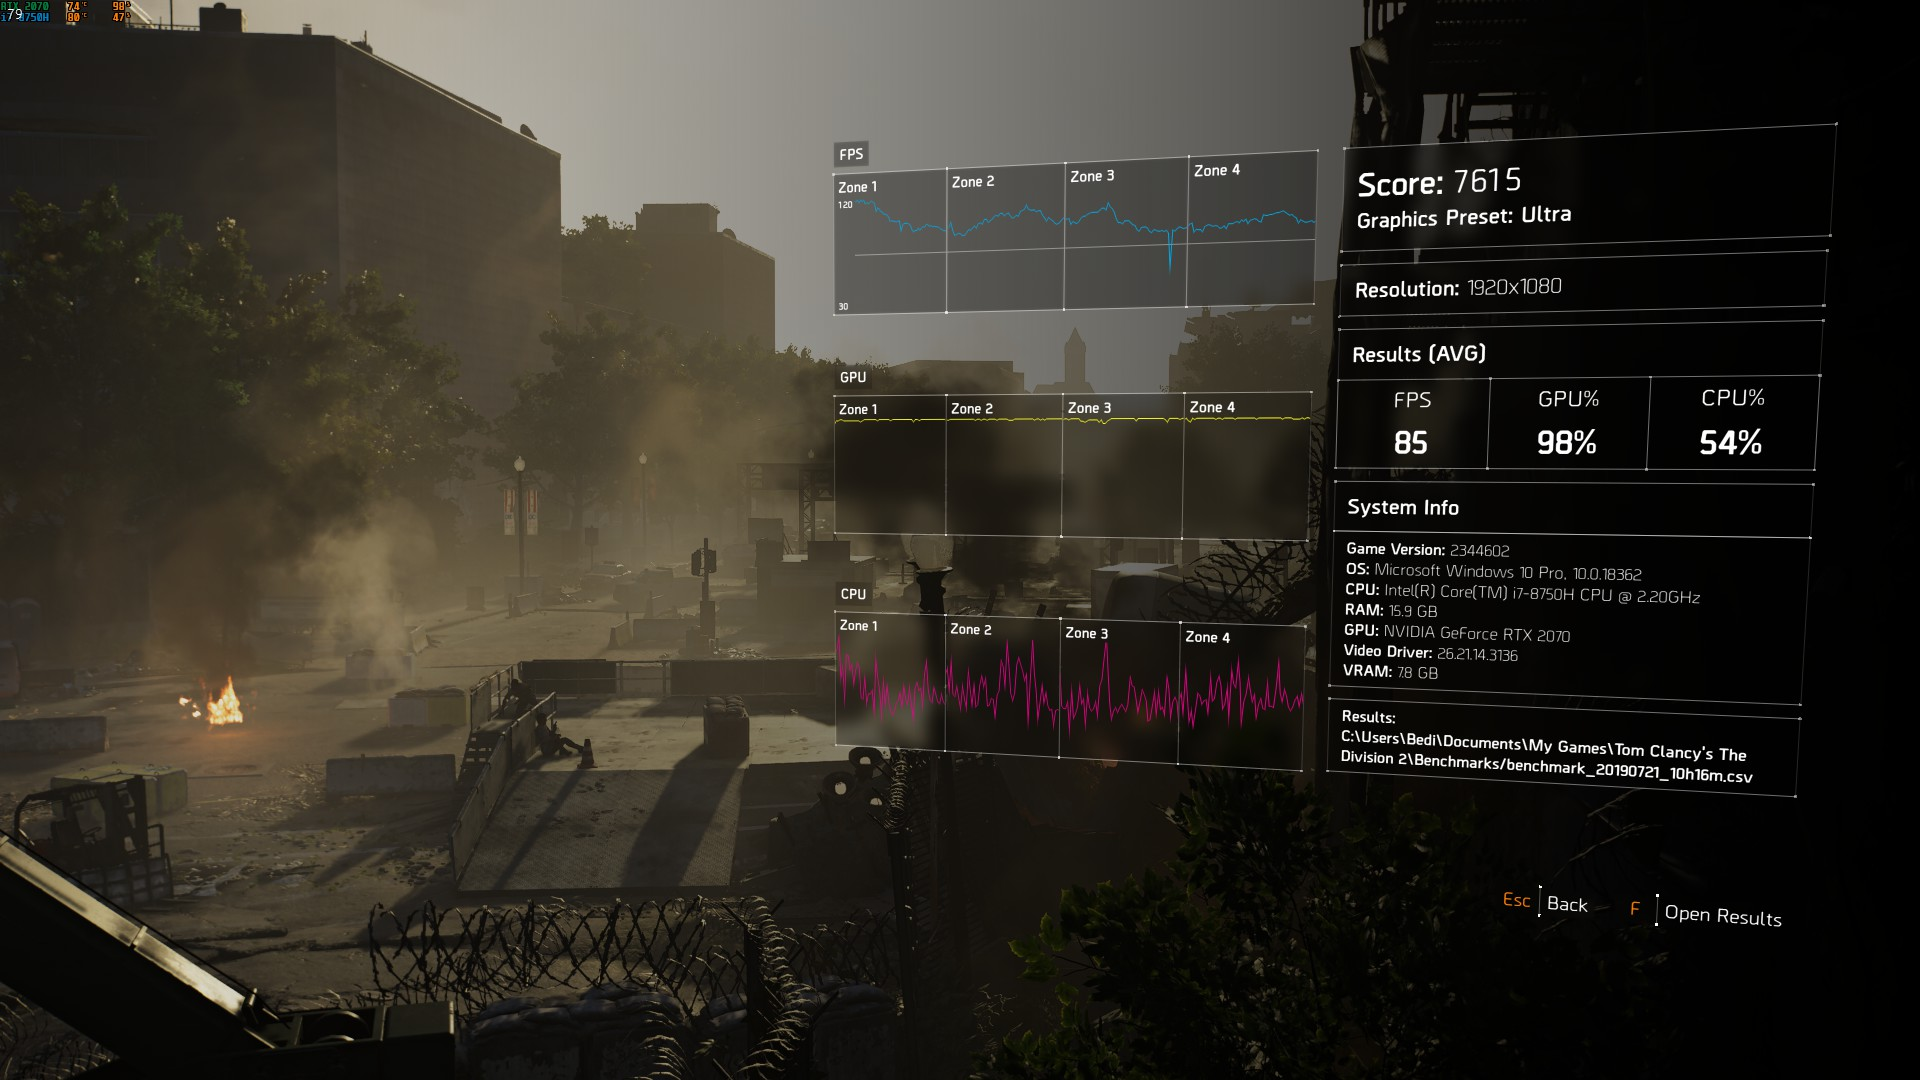 Tom Clancy's The Division® 22019-7-21-10-16-22.jpg